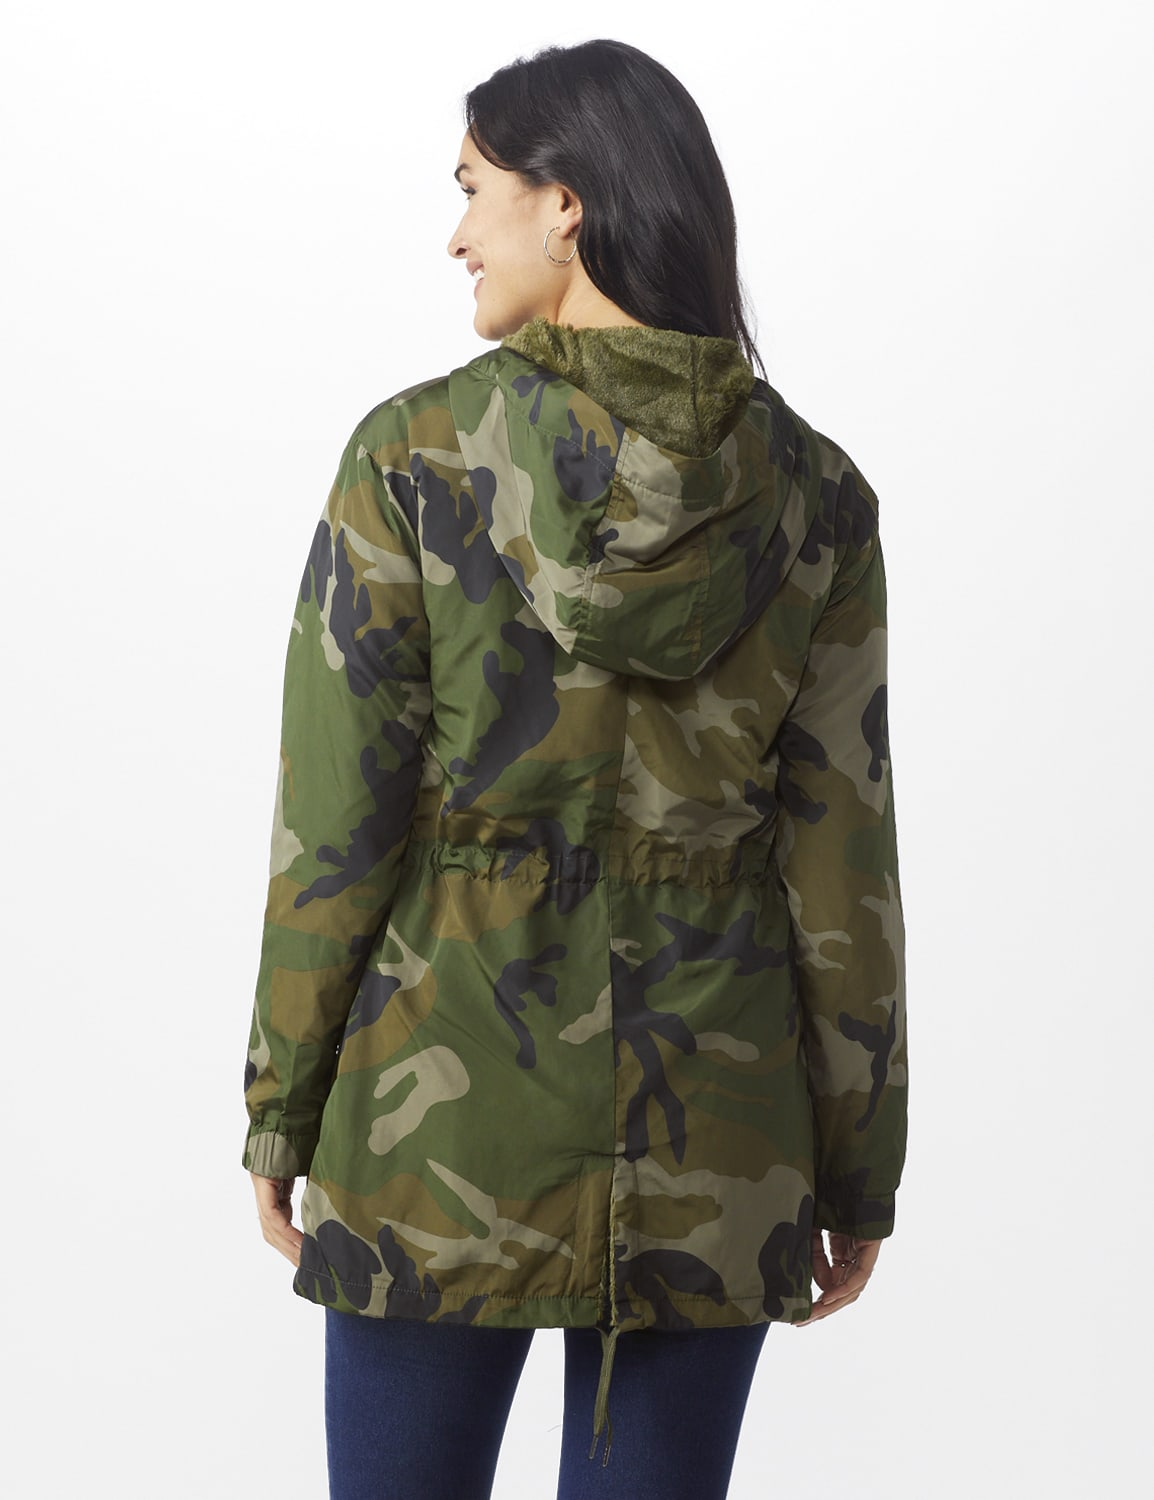 Long Nylon Anorak with Faux Fur Lining - Dark green camo - Back